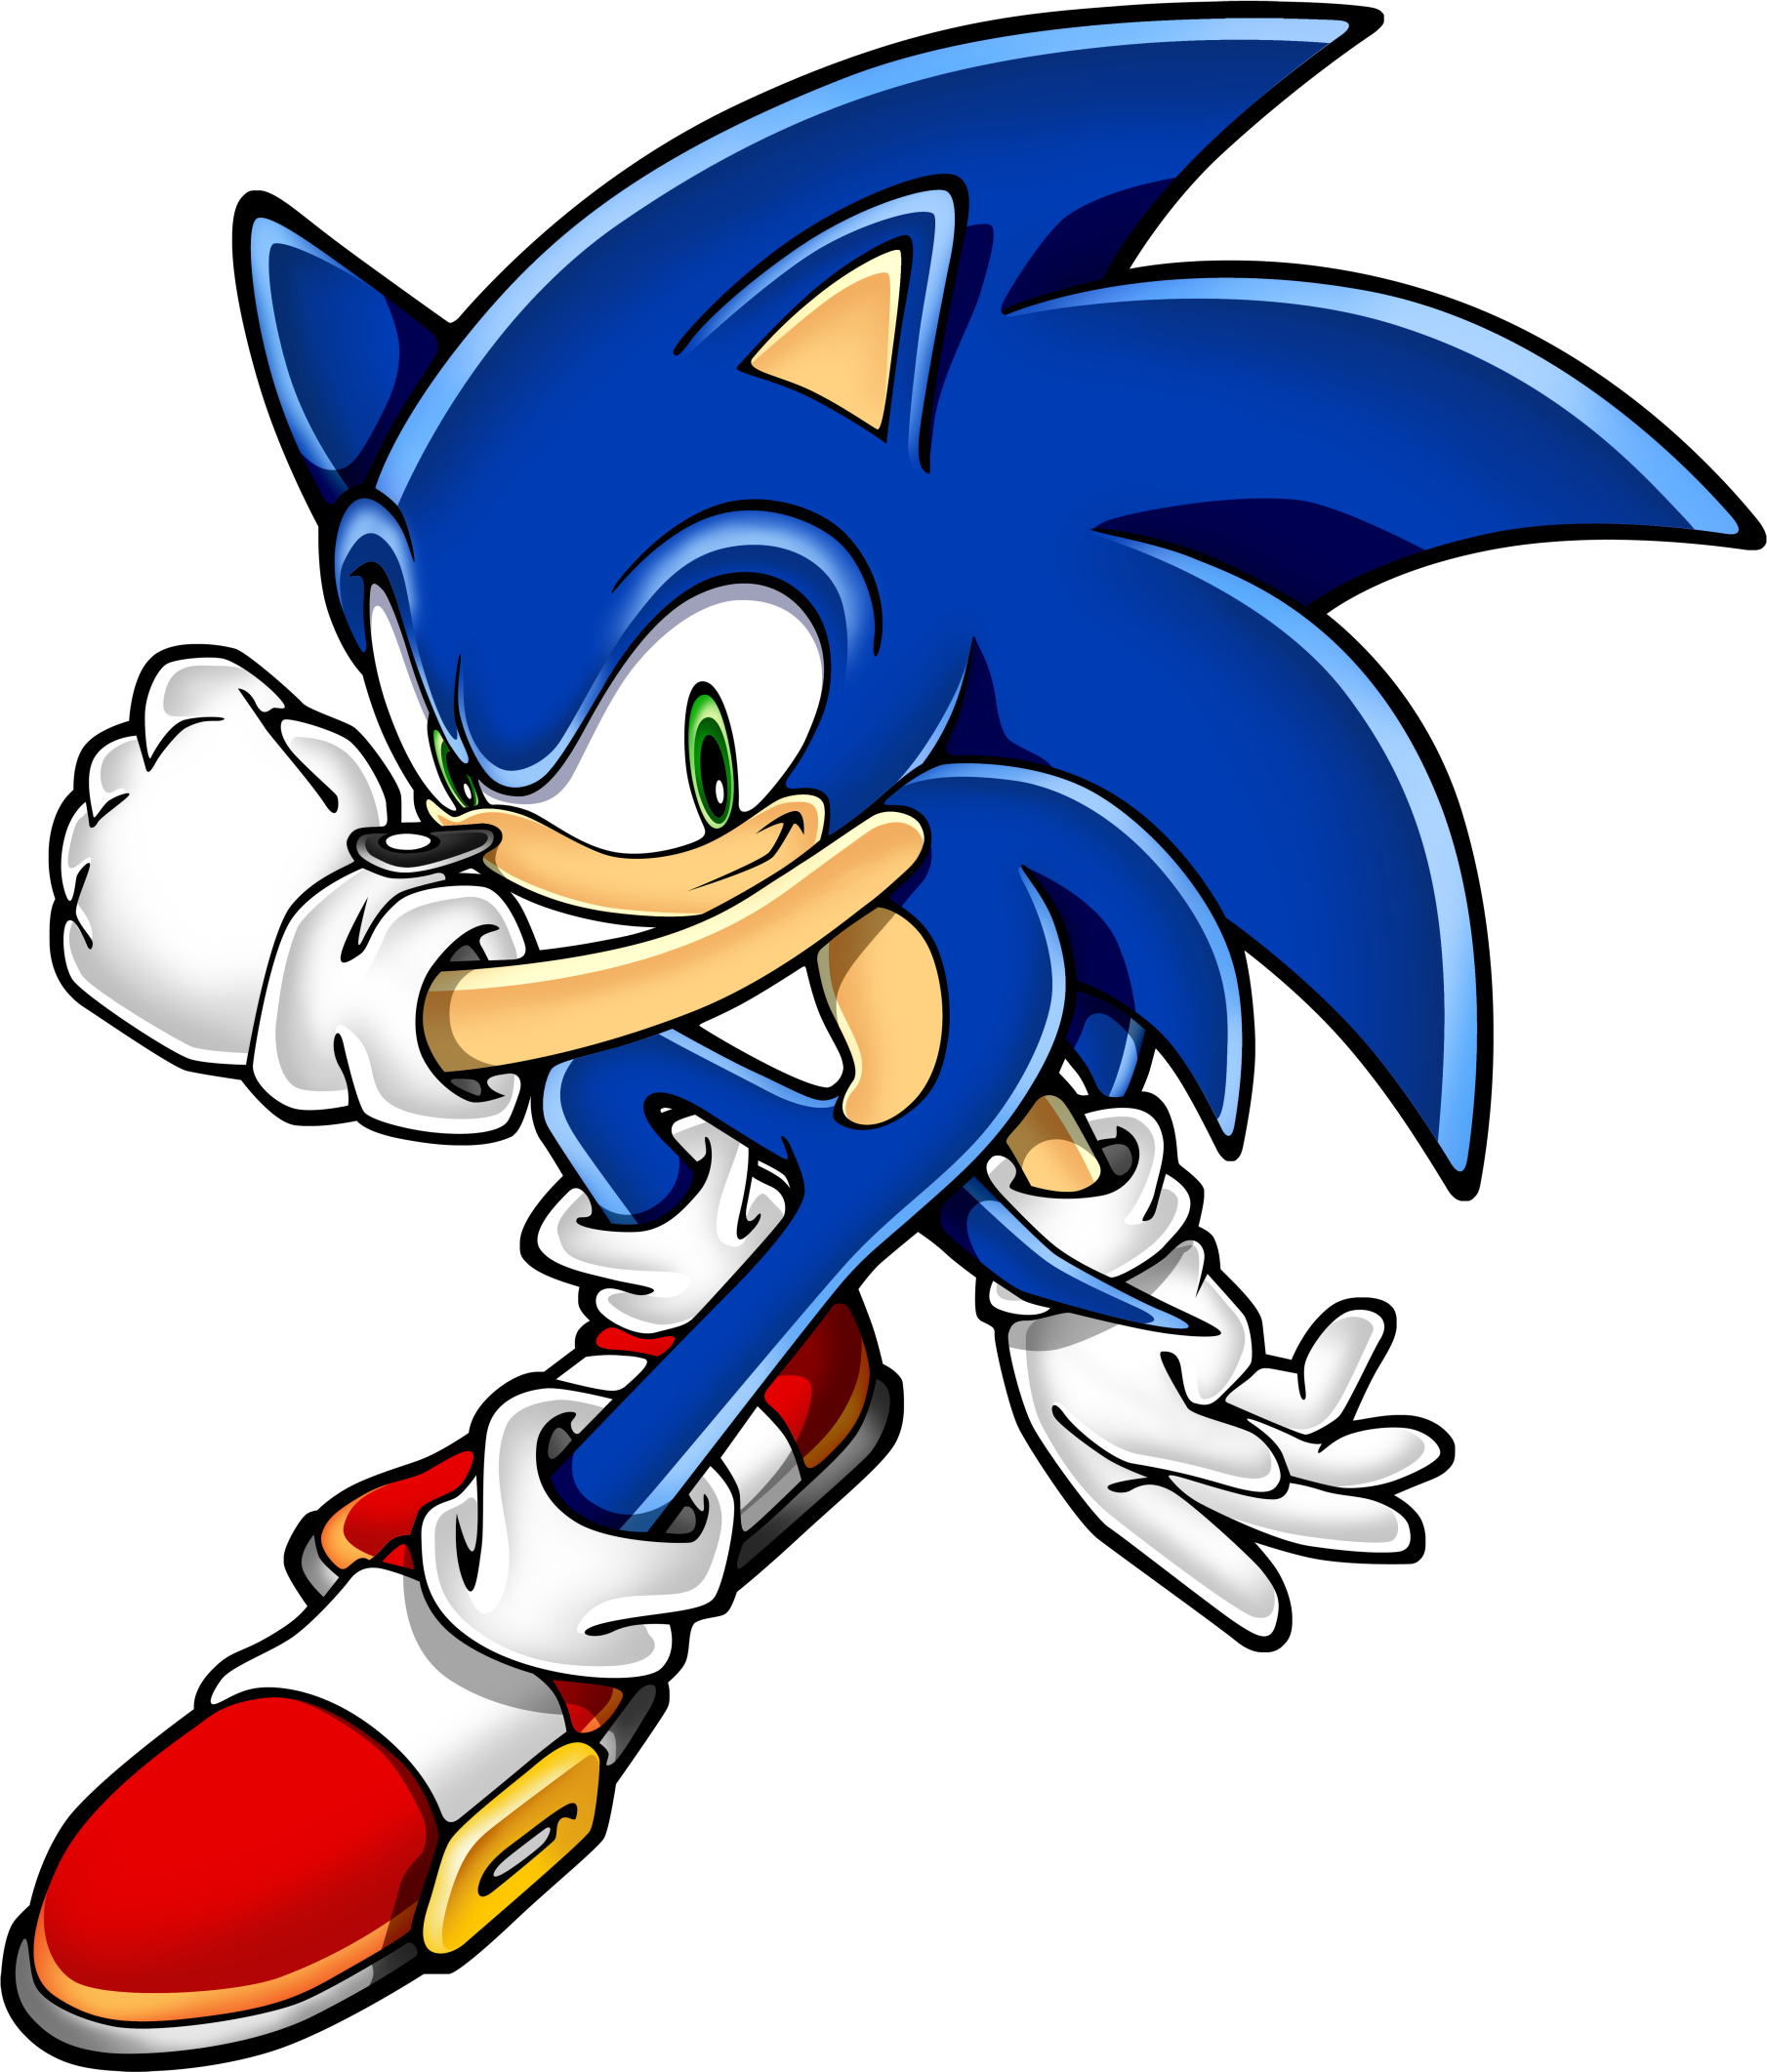 sonic the hedgehog - Cerca con Google - Sonic The Hedgehog PNG